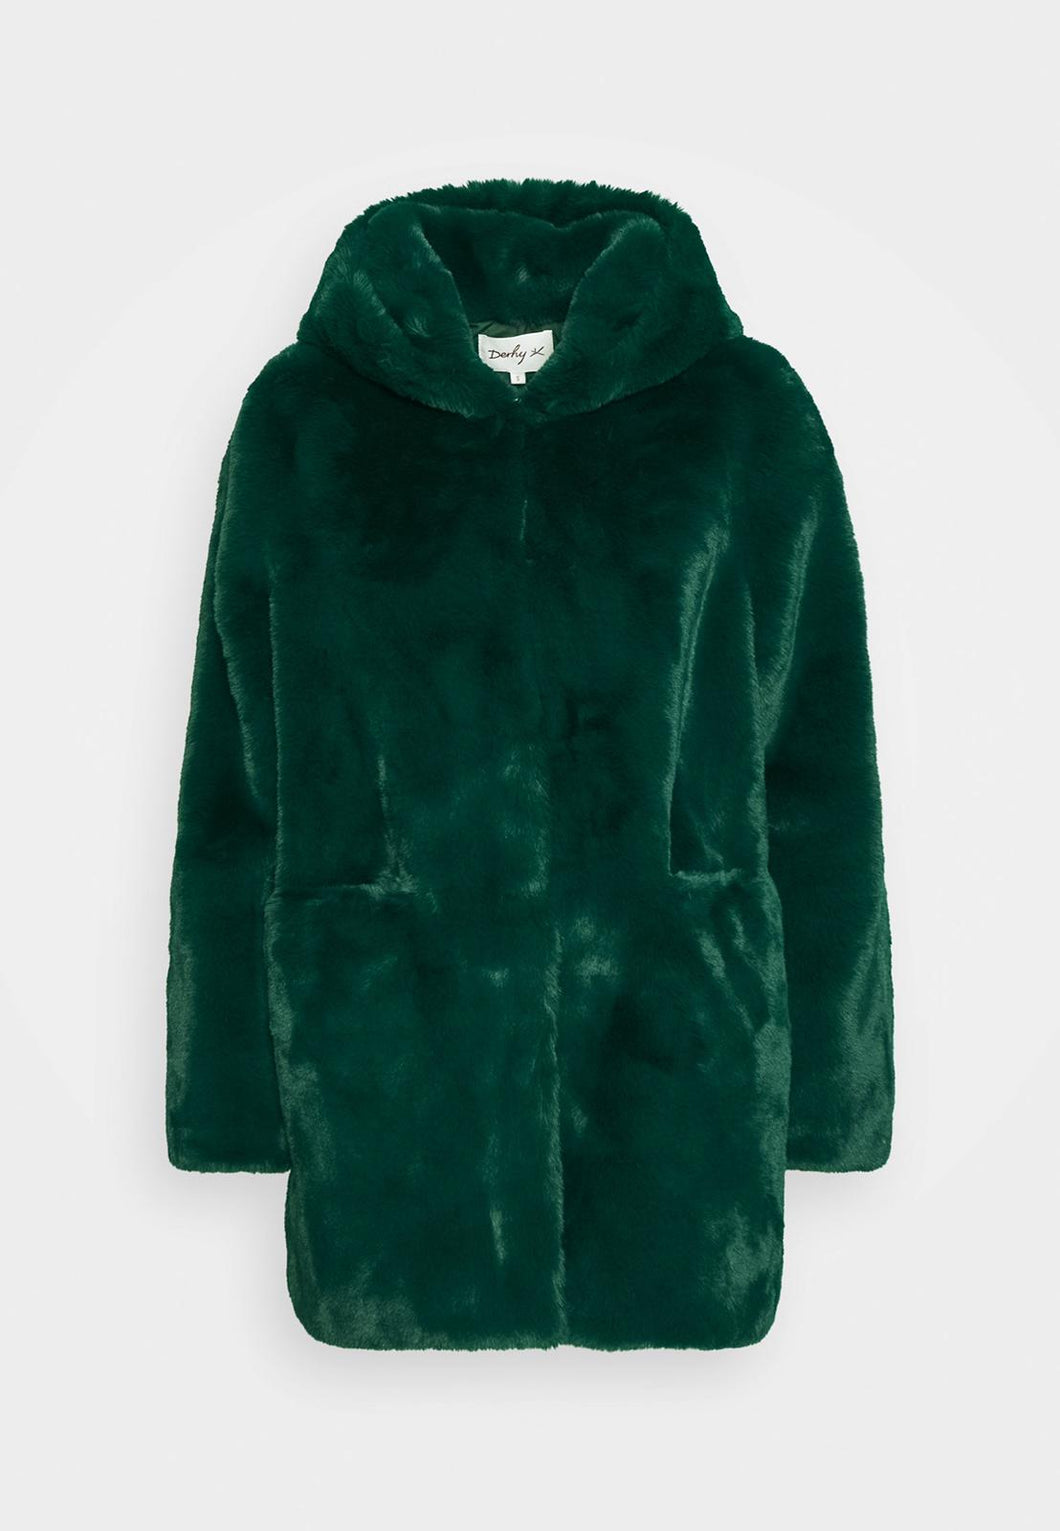 Emerald Green Fur Coat with Hood from Derhy Womenswear at Rocco Boutique Clontarf